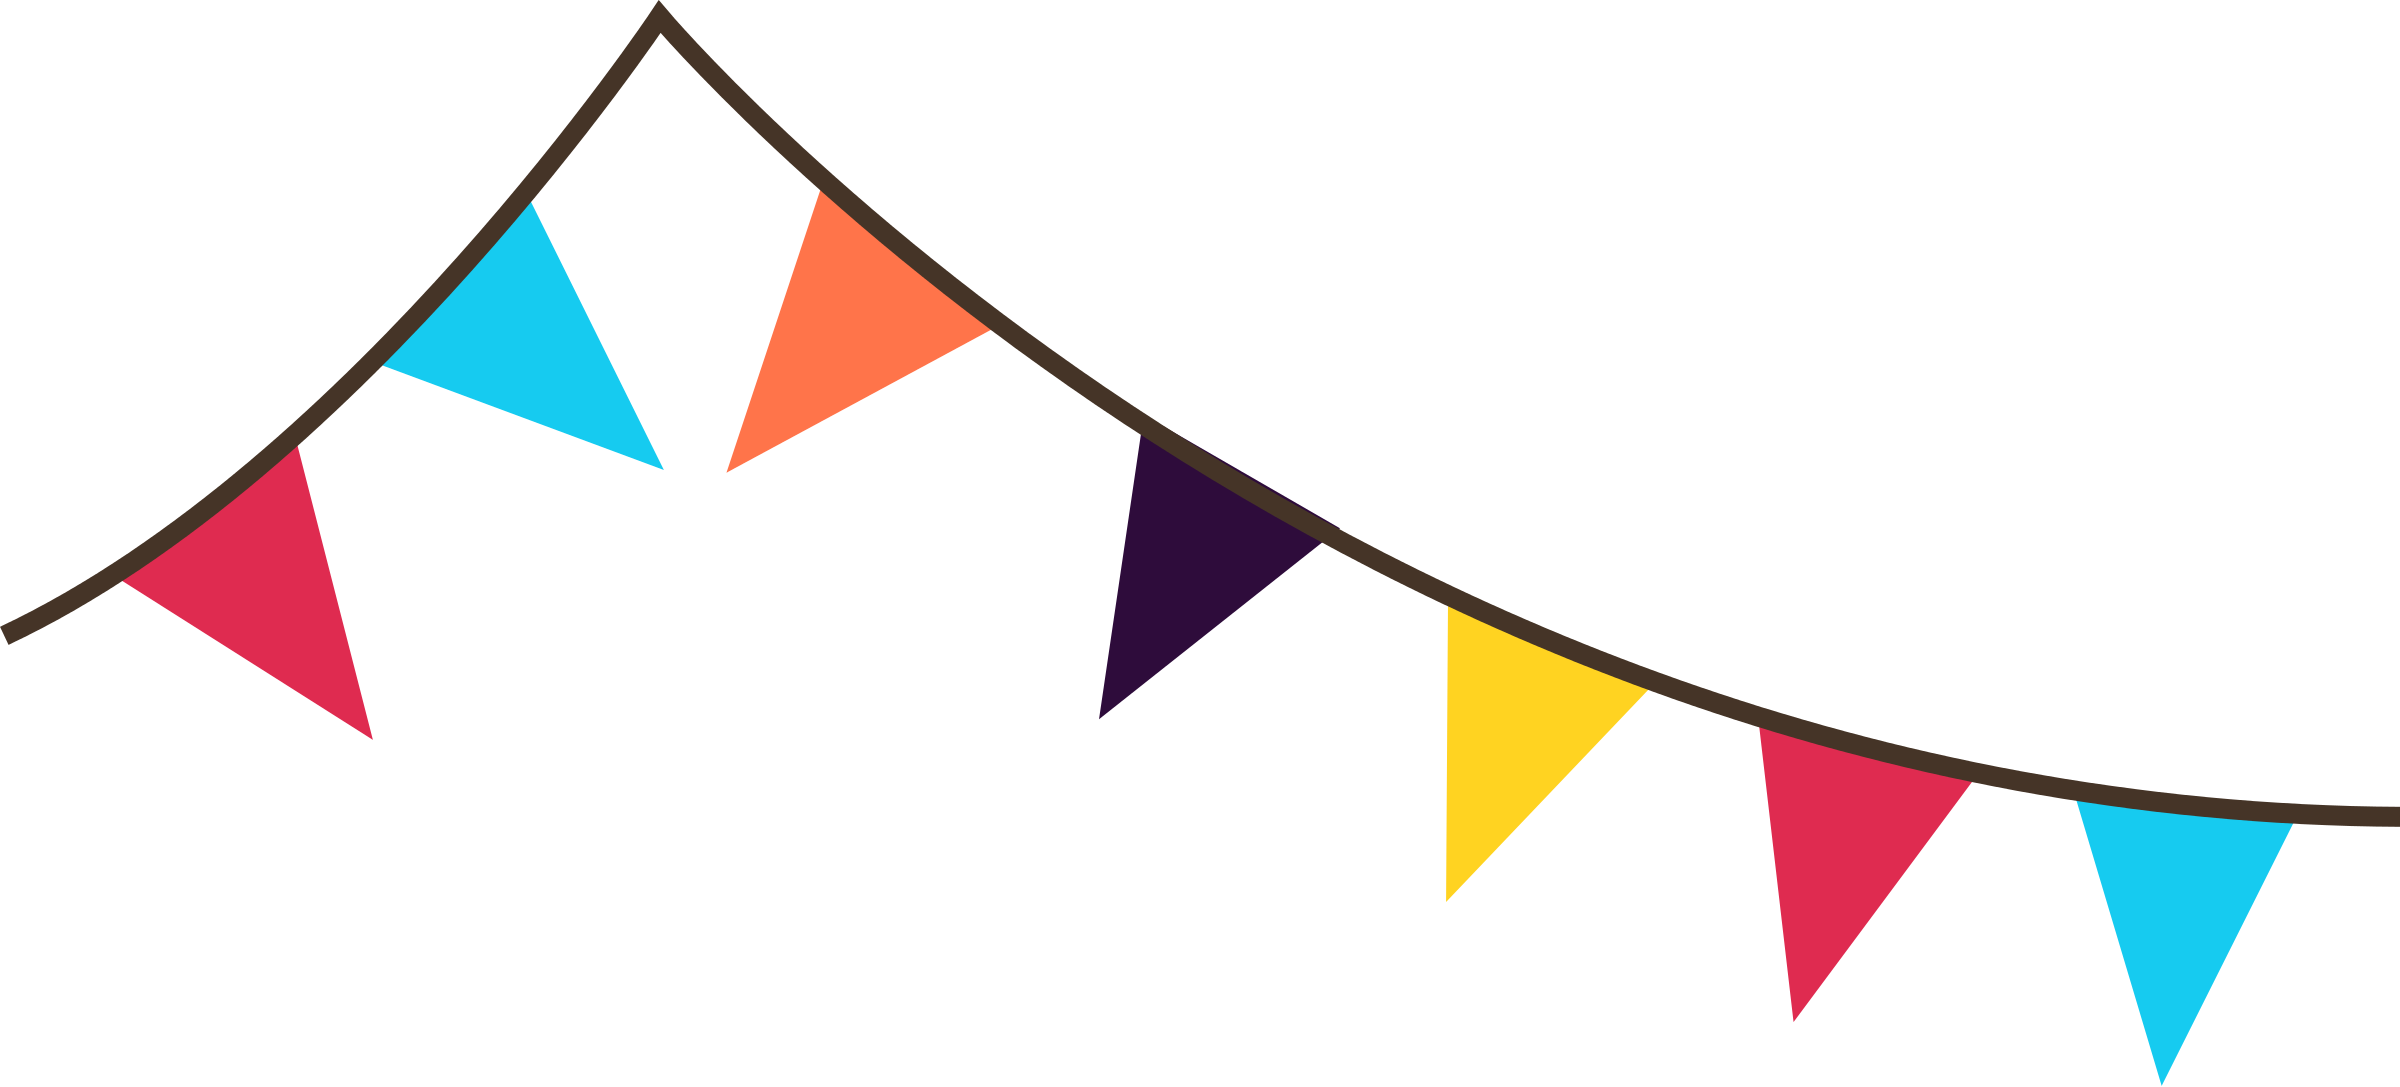 Flags banner png. Triangle flag transparent images